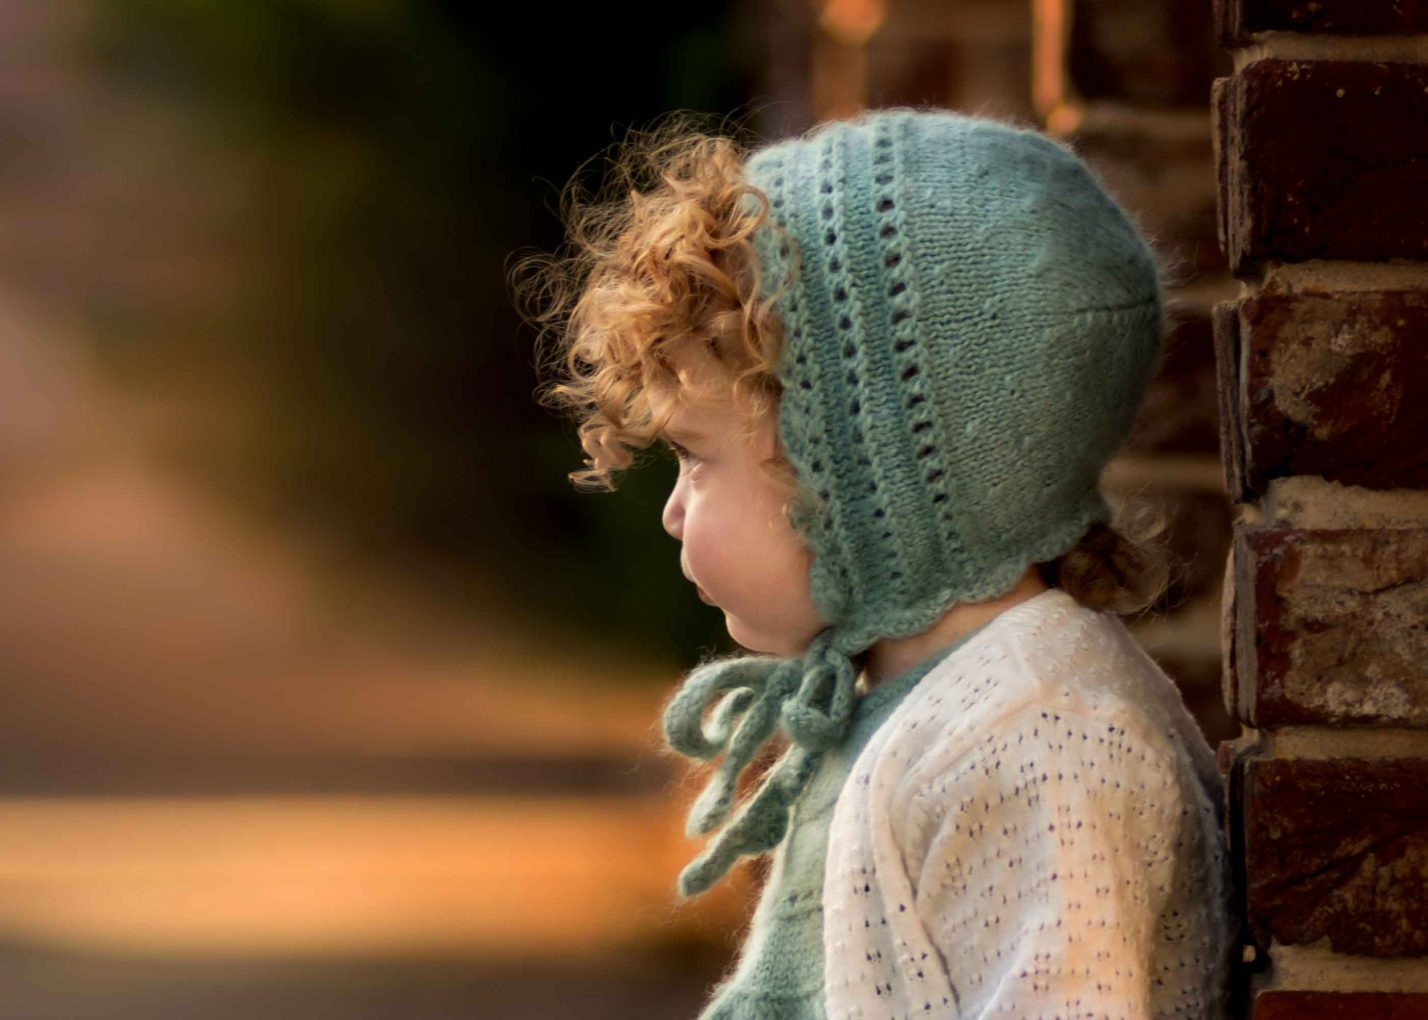 Brooklyn, NY portrait of little with handmade bonnet and curls standing by brick pillar